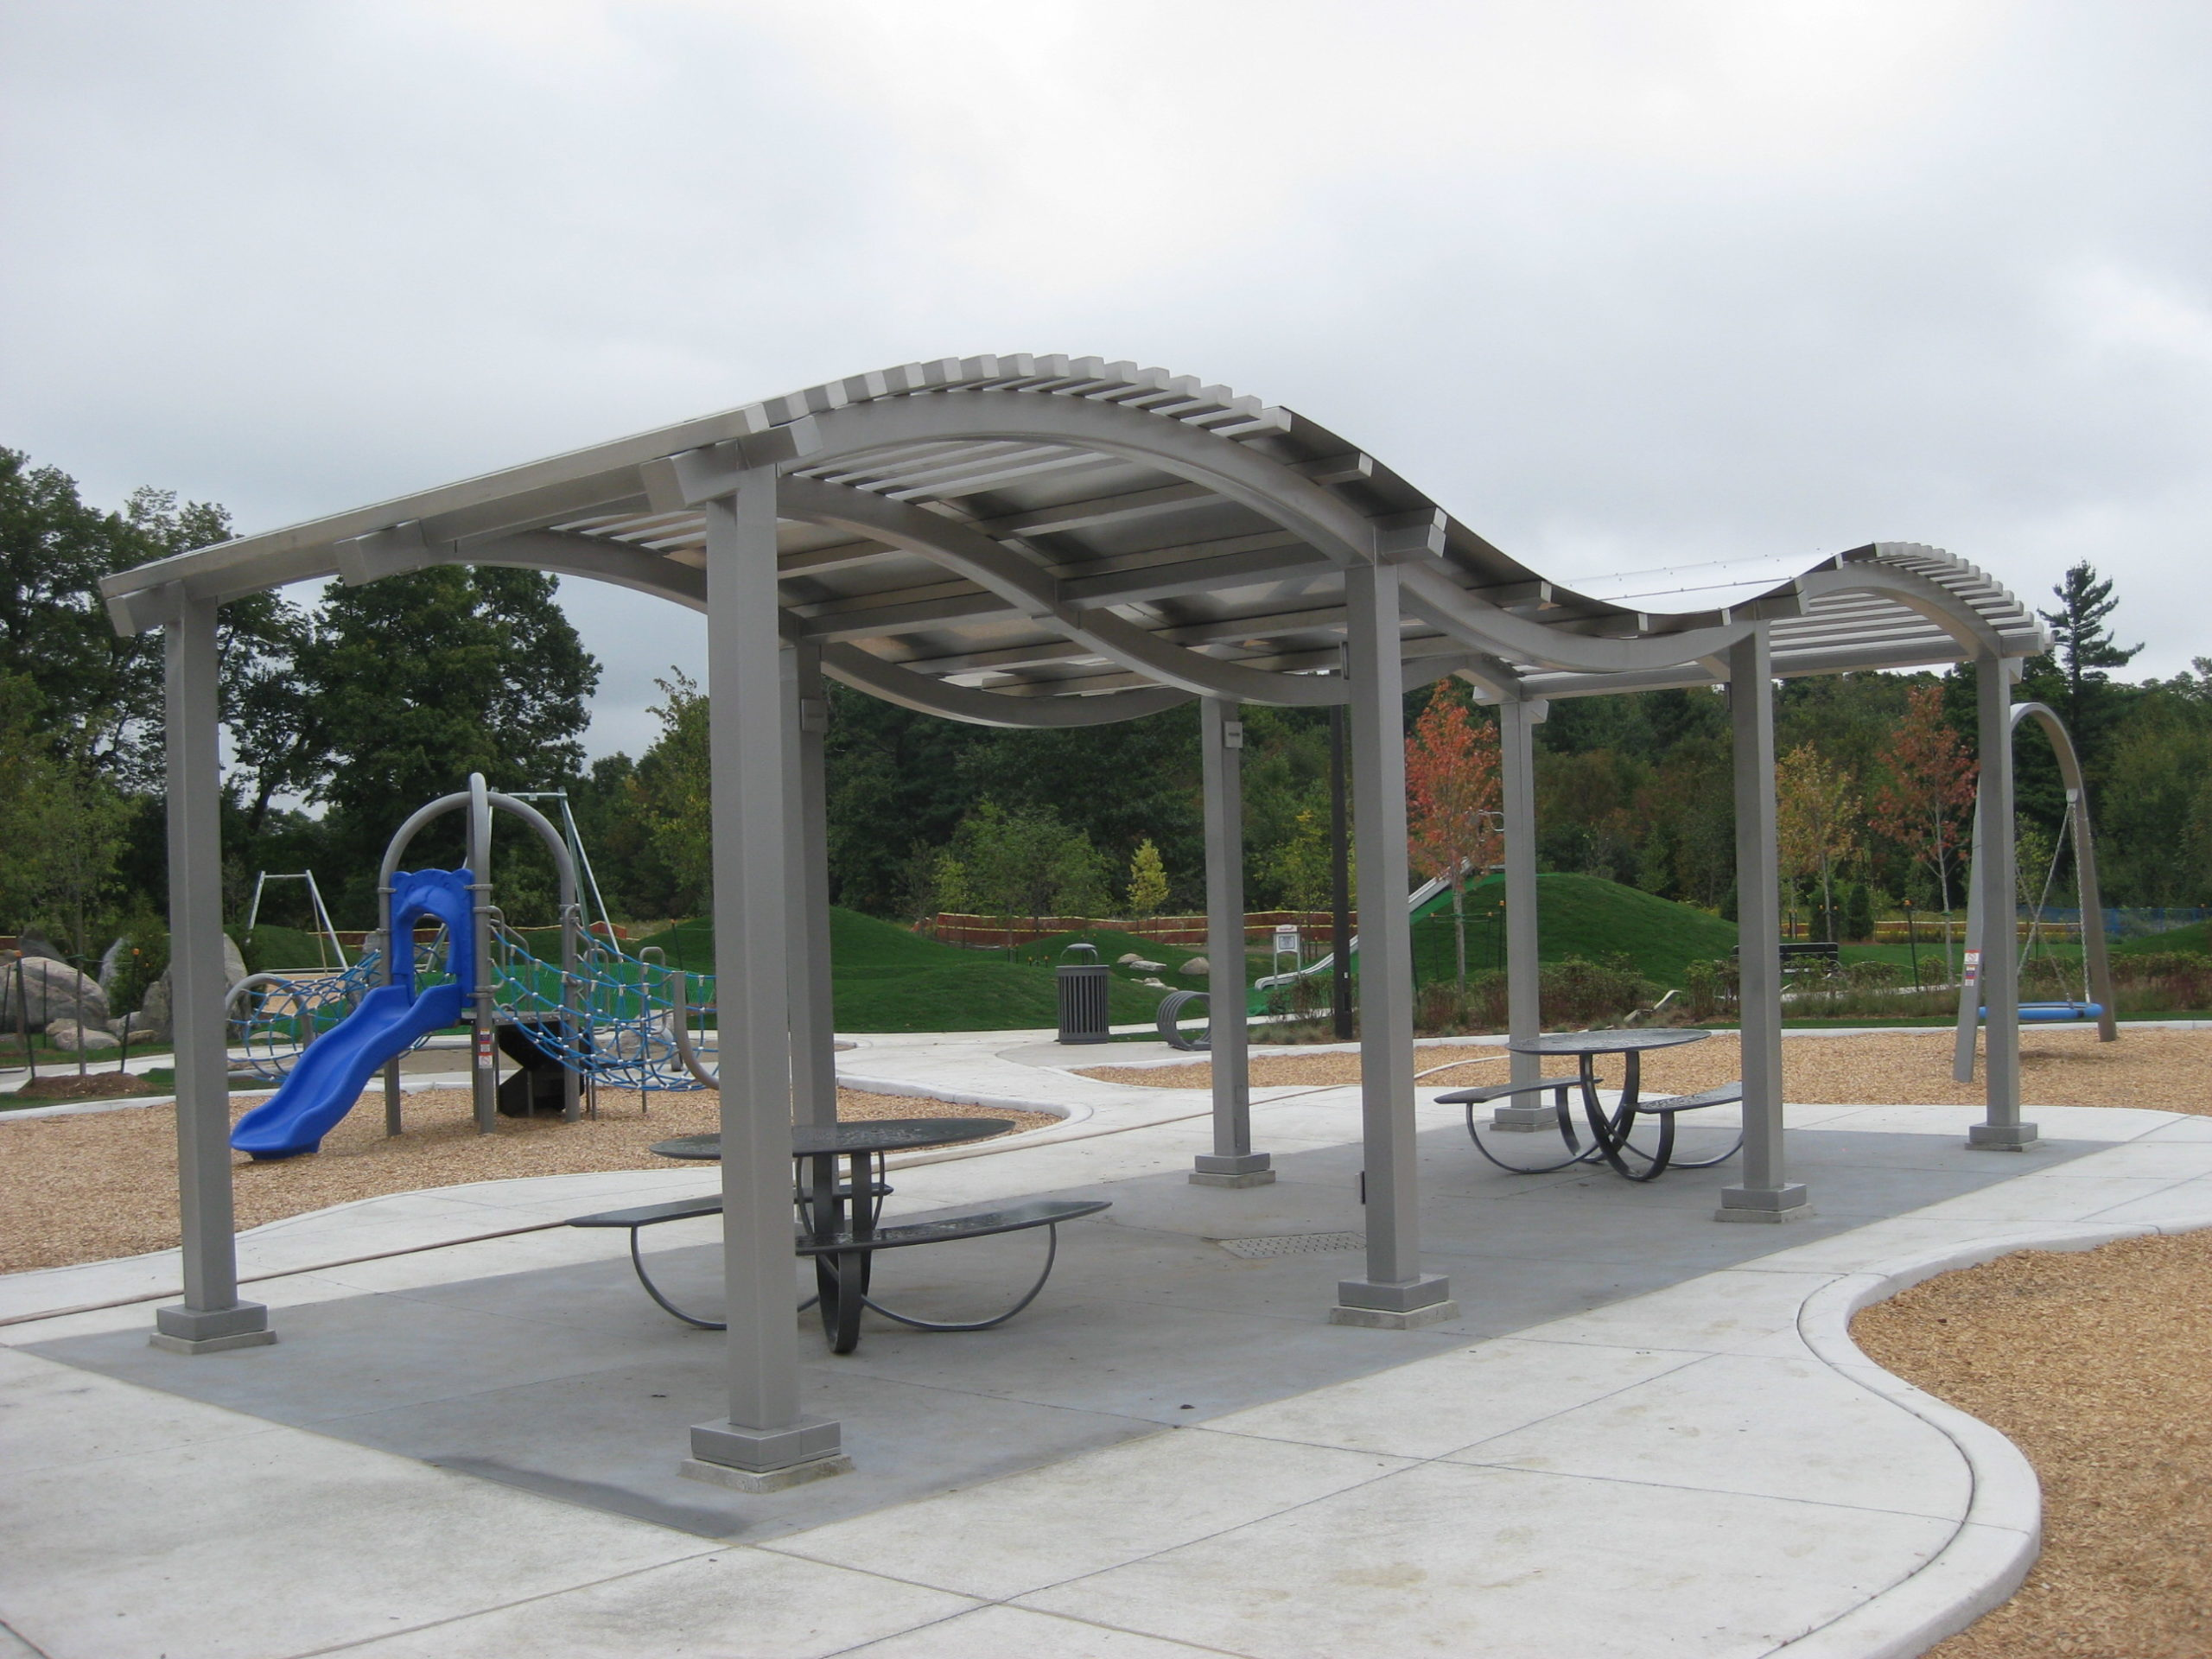 Shade structure with picnic benches under it.